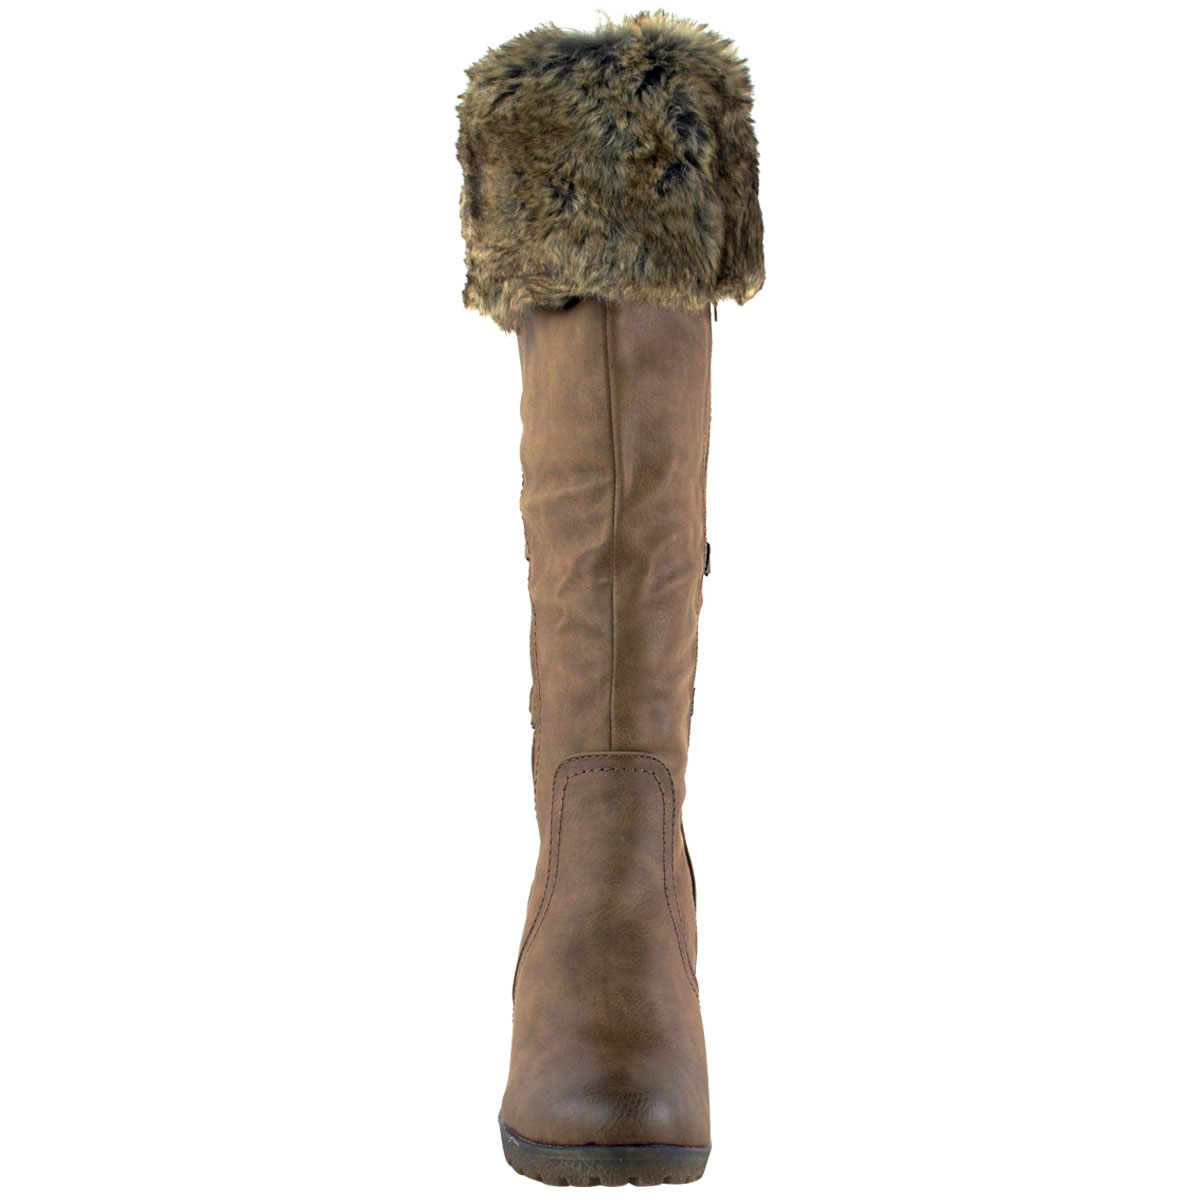 WOMENS-LADIES-MID-WEDGE-HIGH-HEEL-FUR-LINED-WARM-WINTER-KNEE-CALF-ZIP-BOOTS-SIZE thumbnail 13